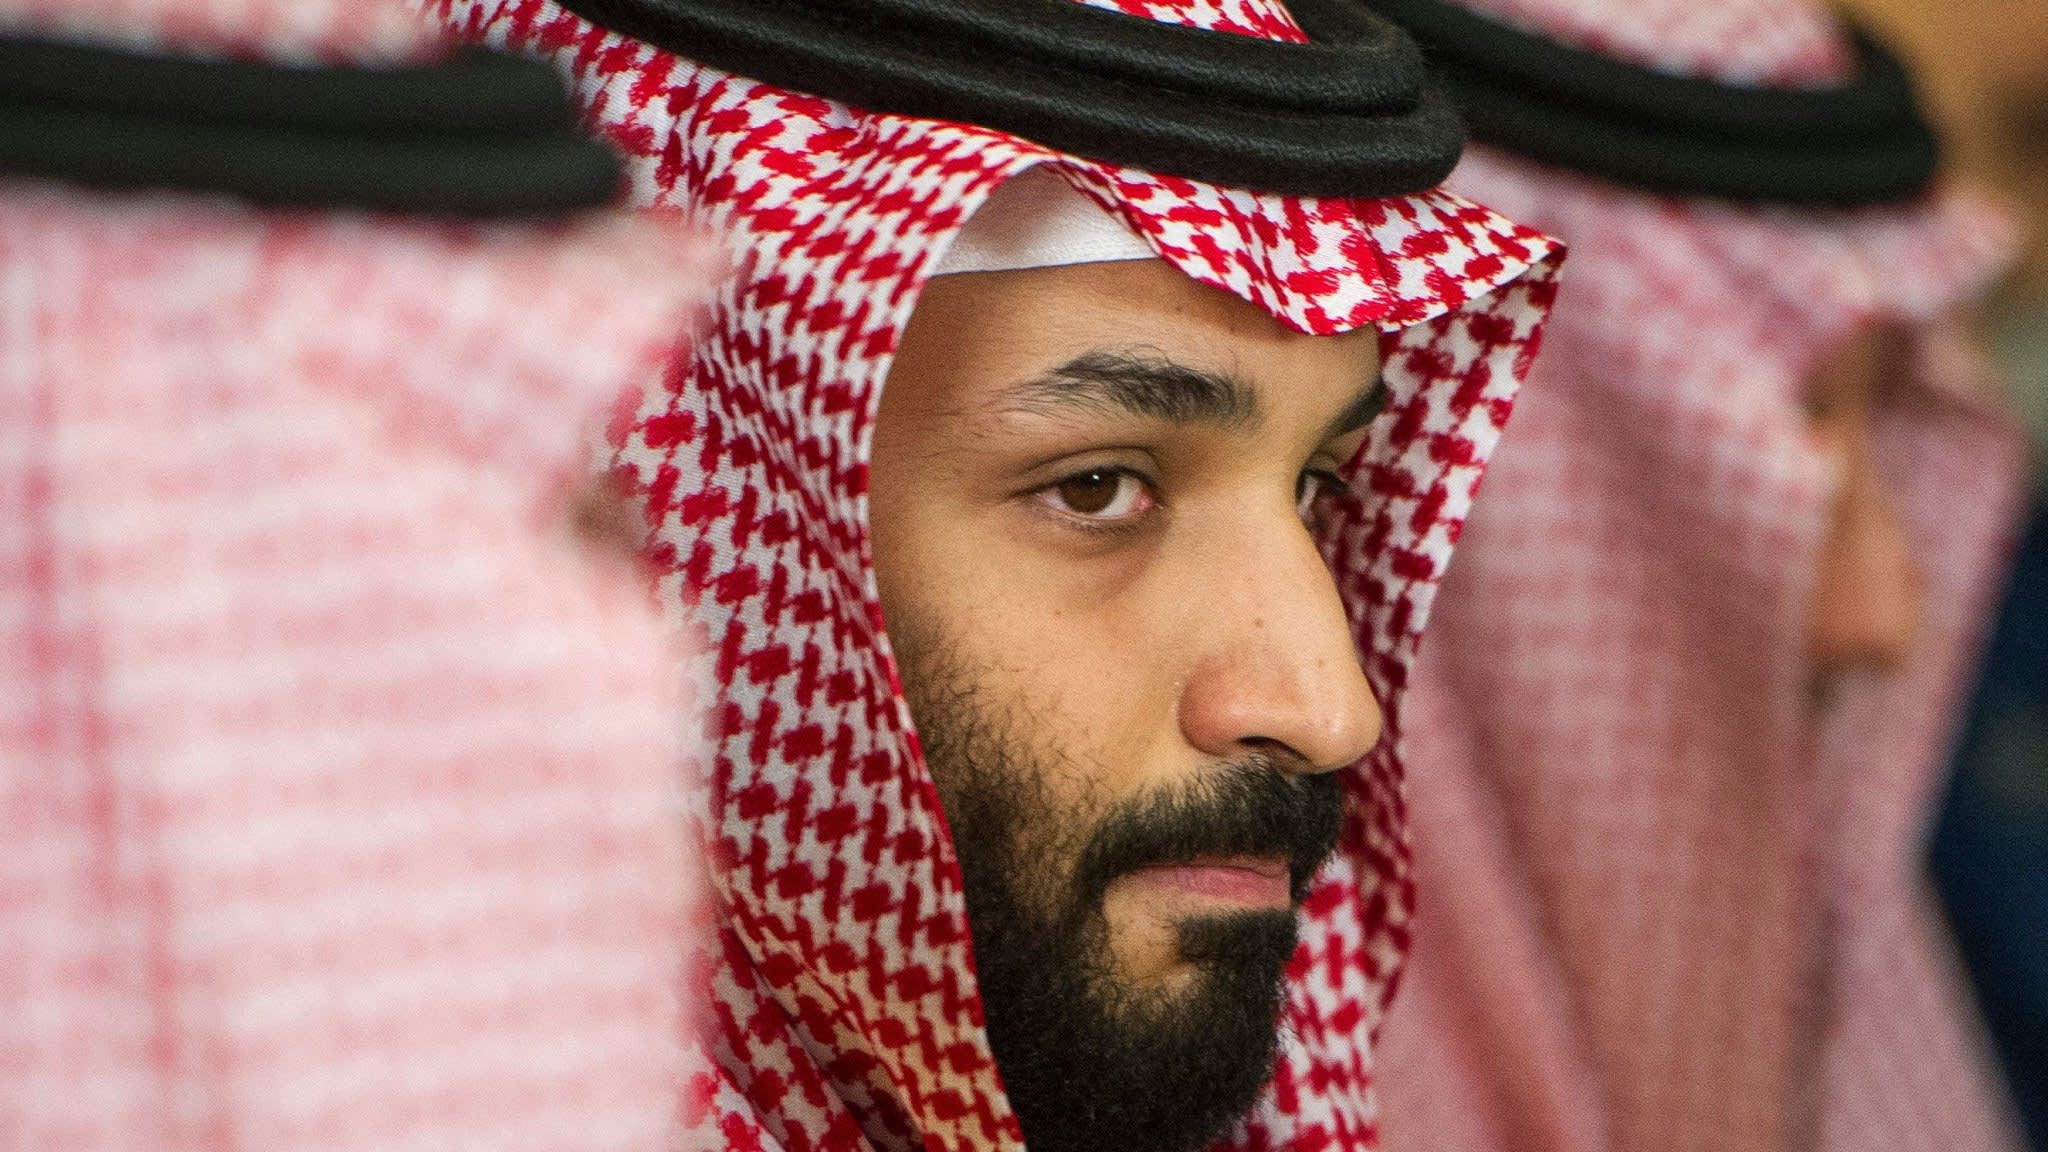 Saudi crown prince faces attempts to rein in his powers